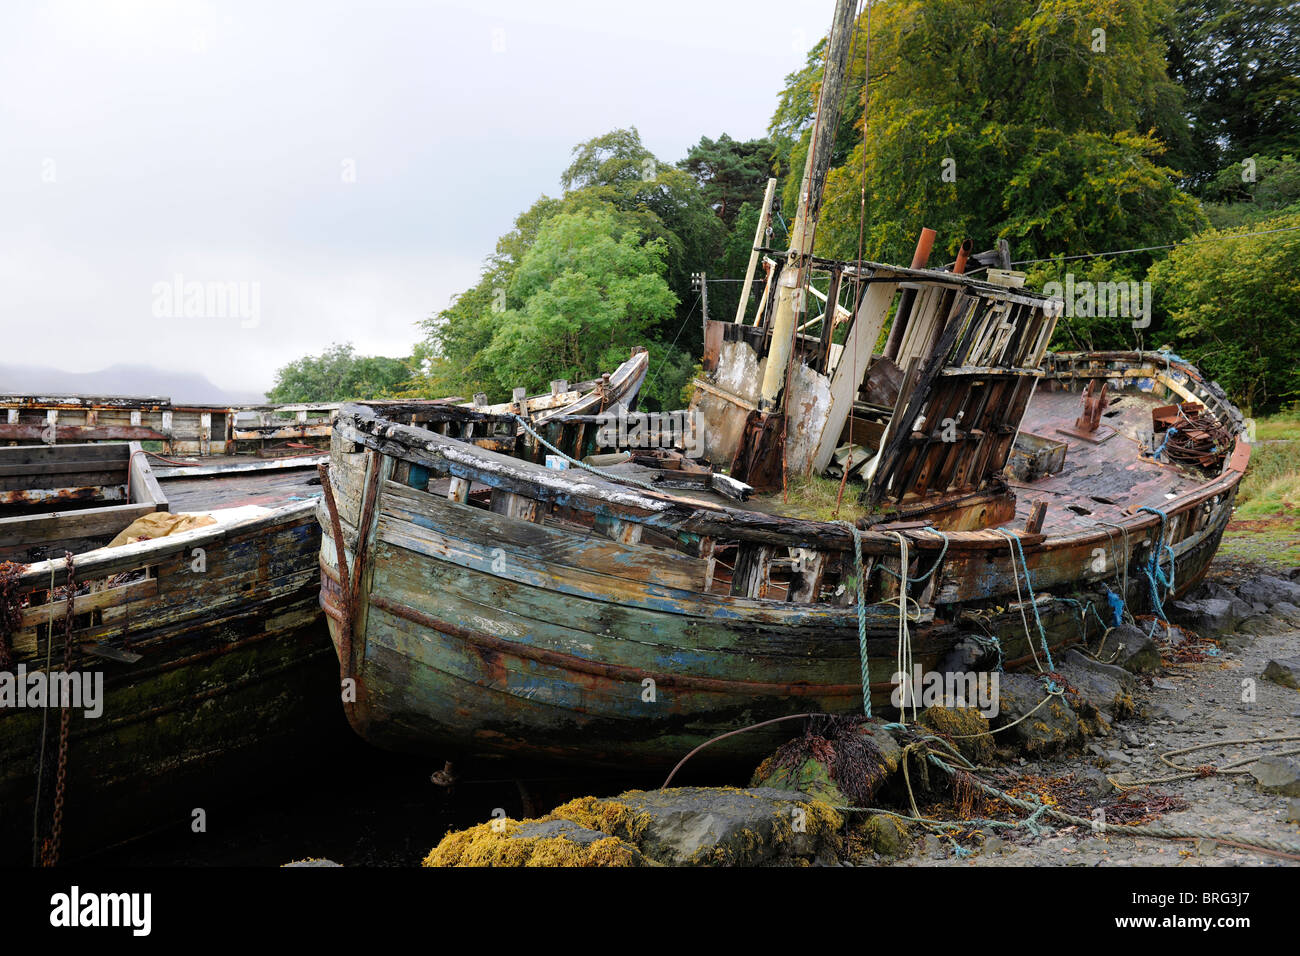 Derelict boat on the Isle of Mull-1 - Stock Image